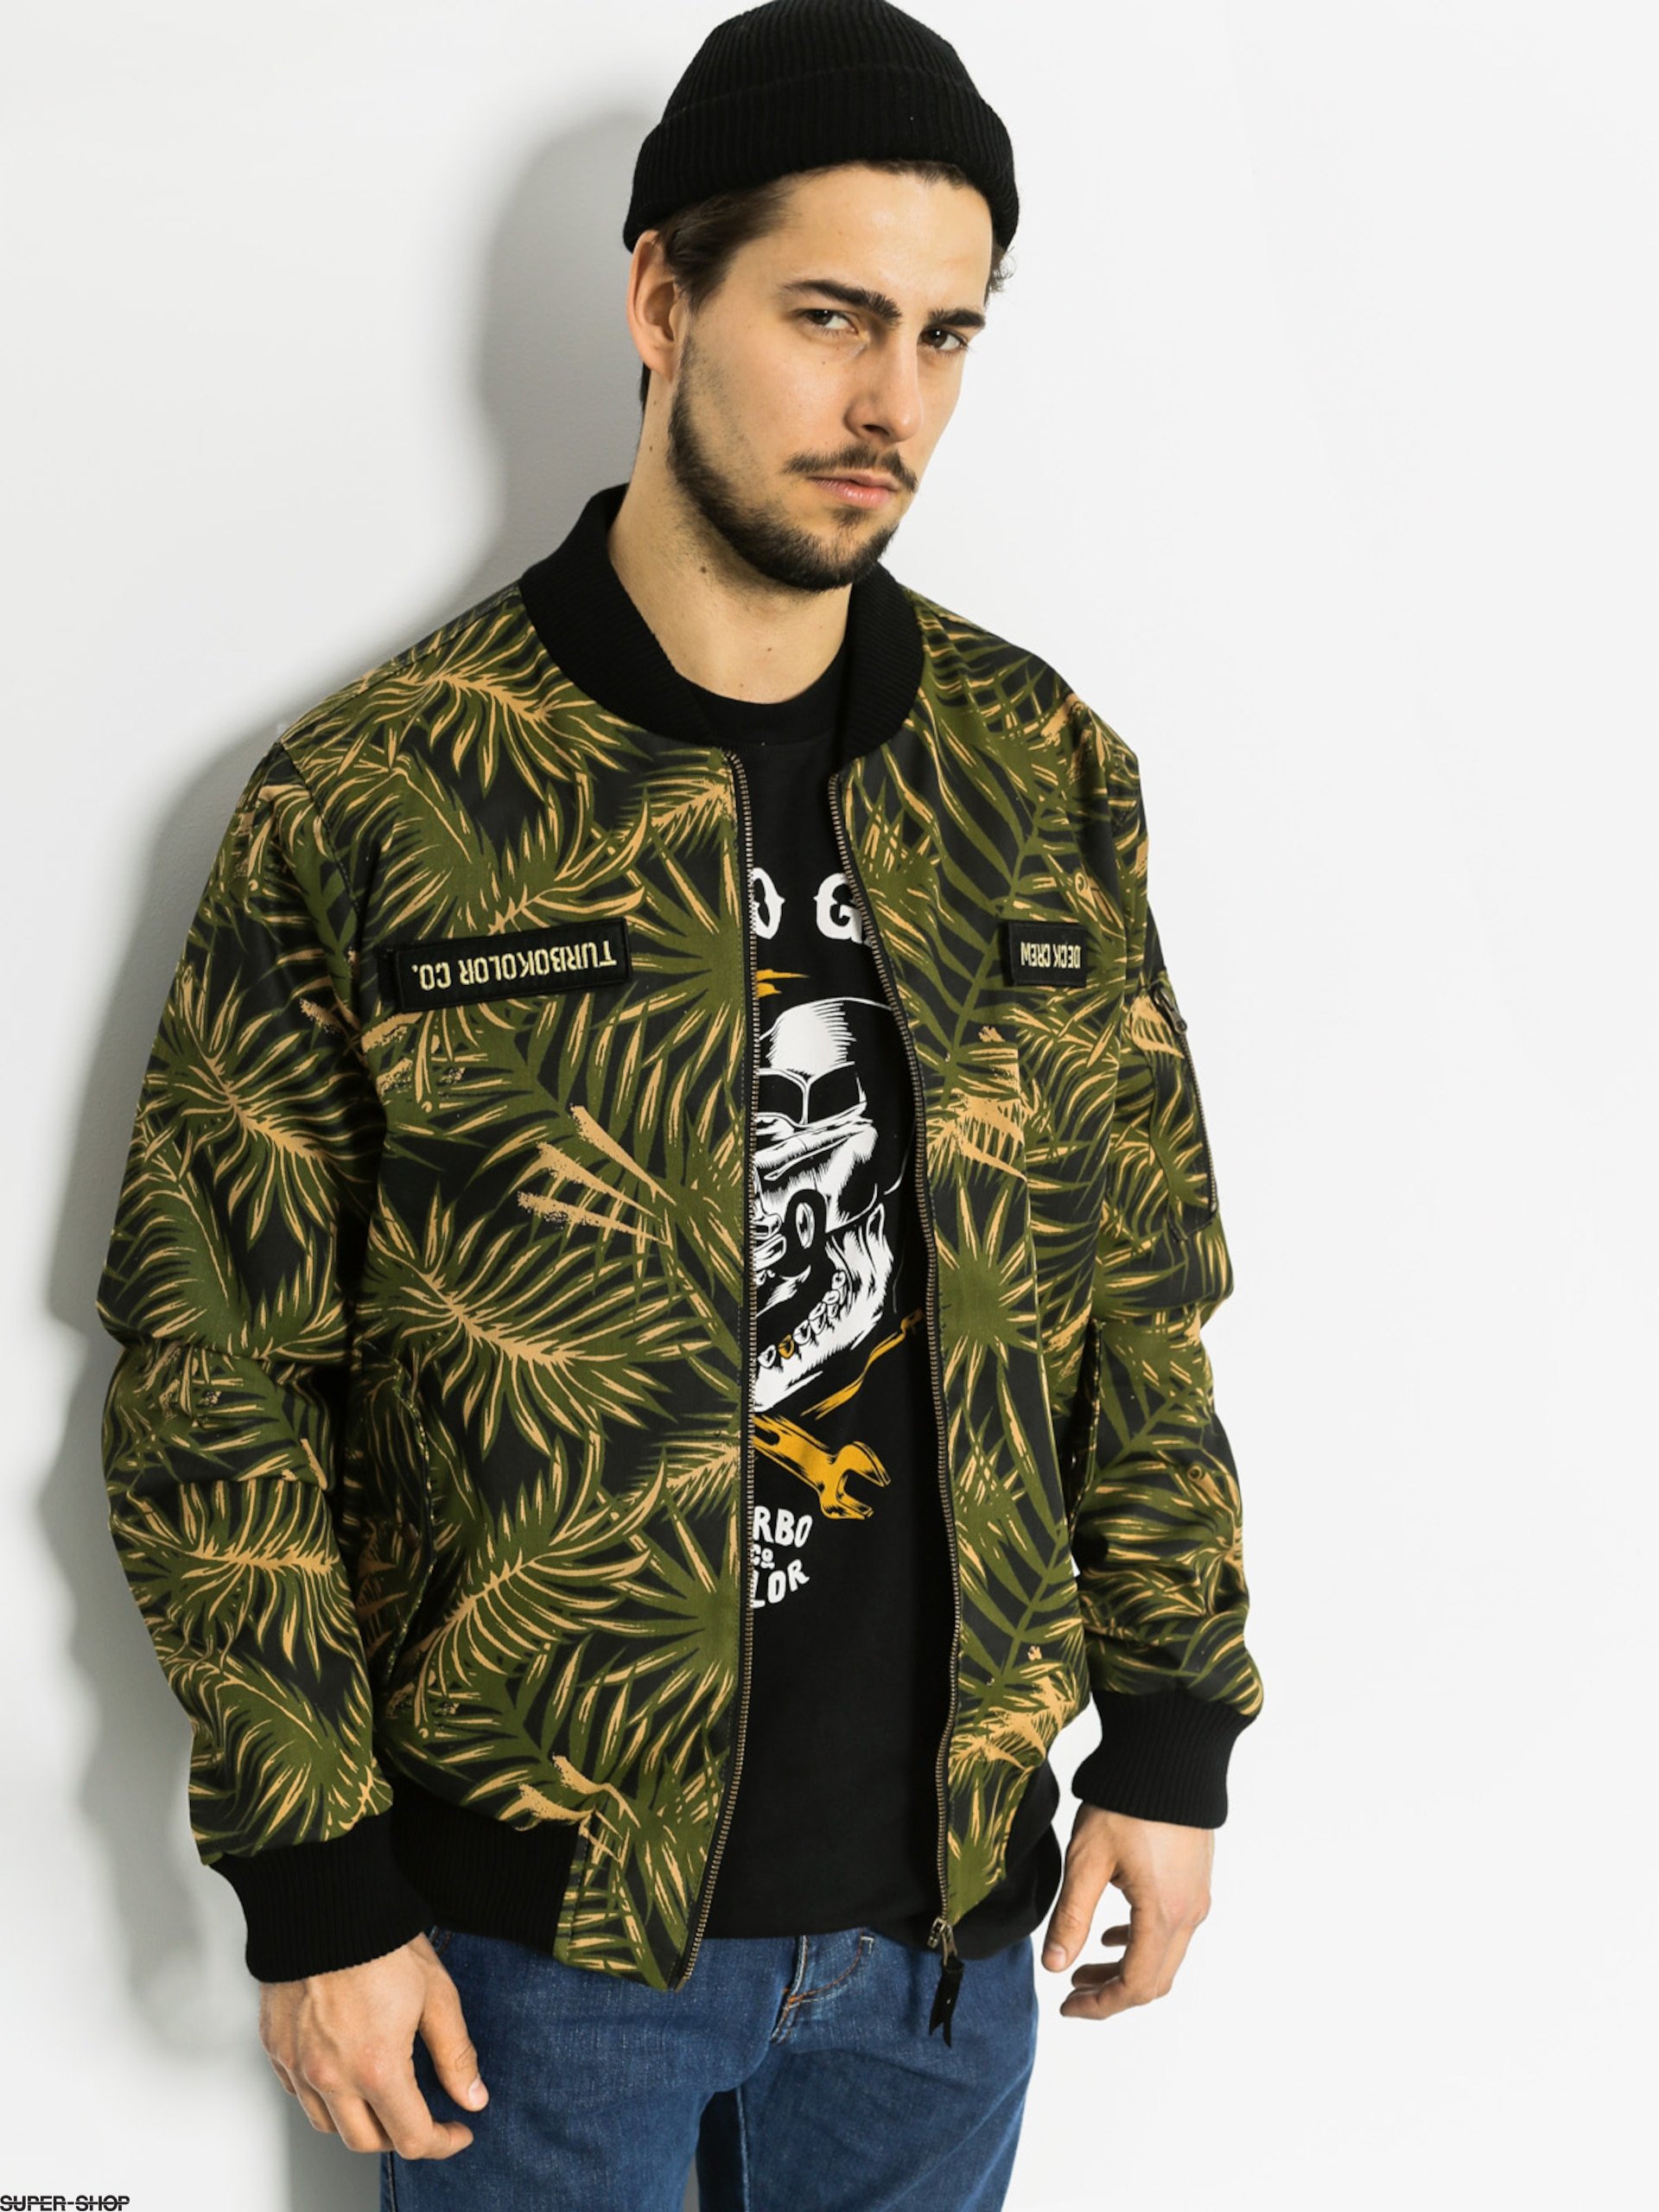 Turbokolor Jacket Bomber Deck Crew (palm mustard camo)